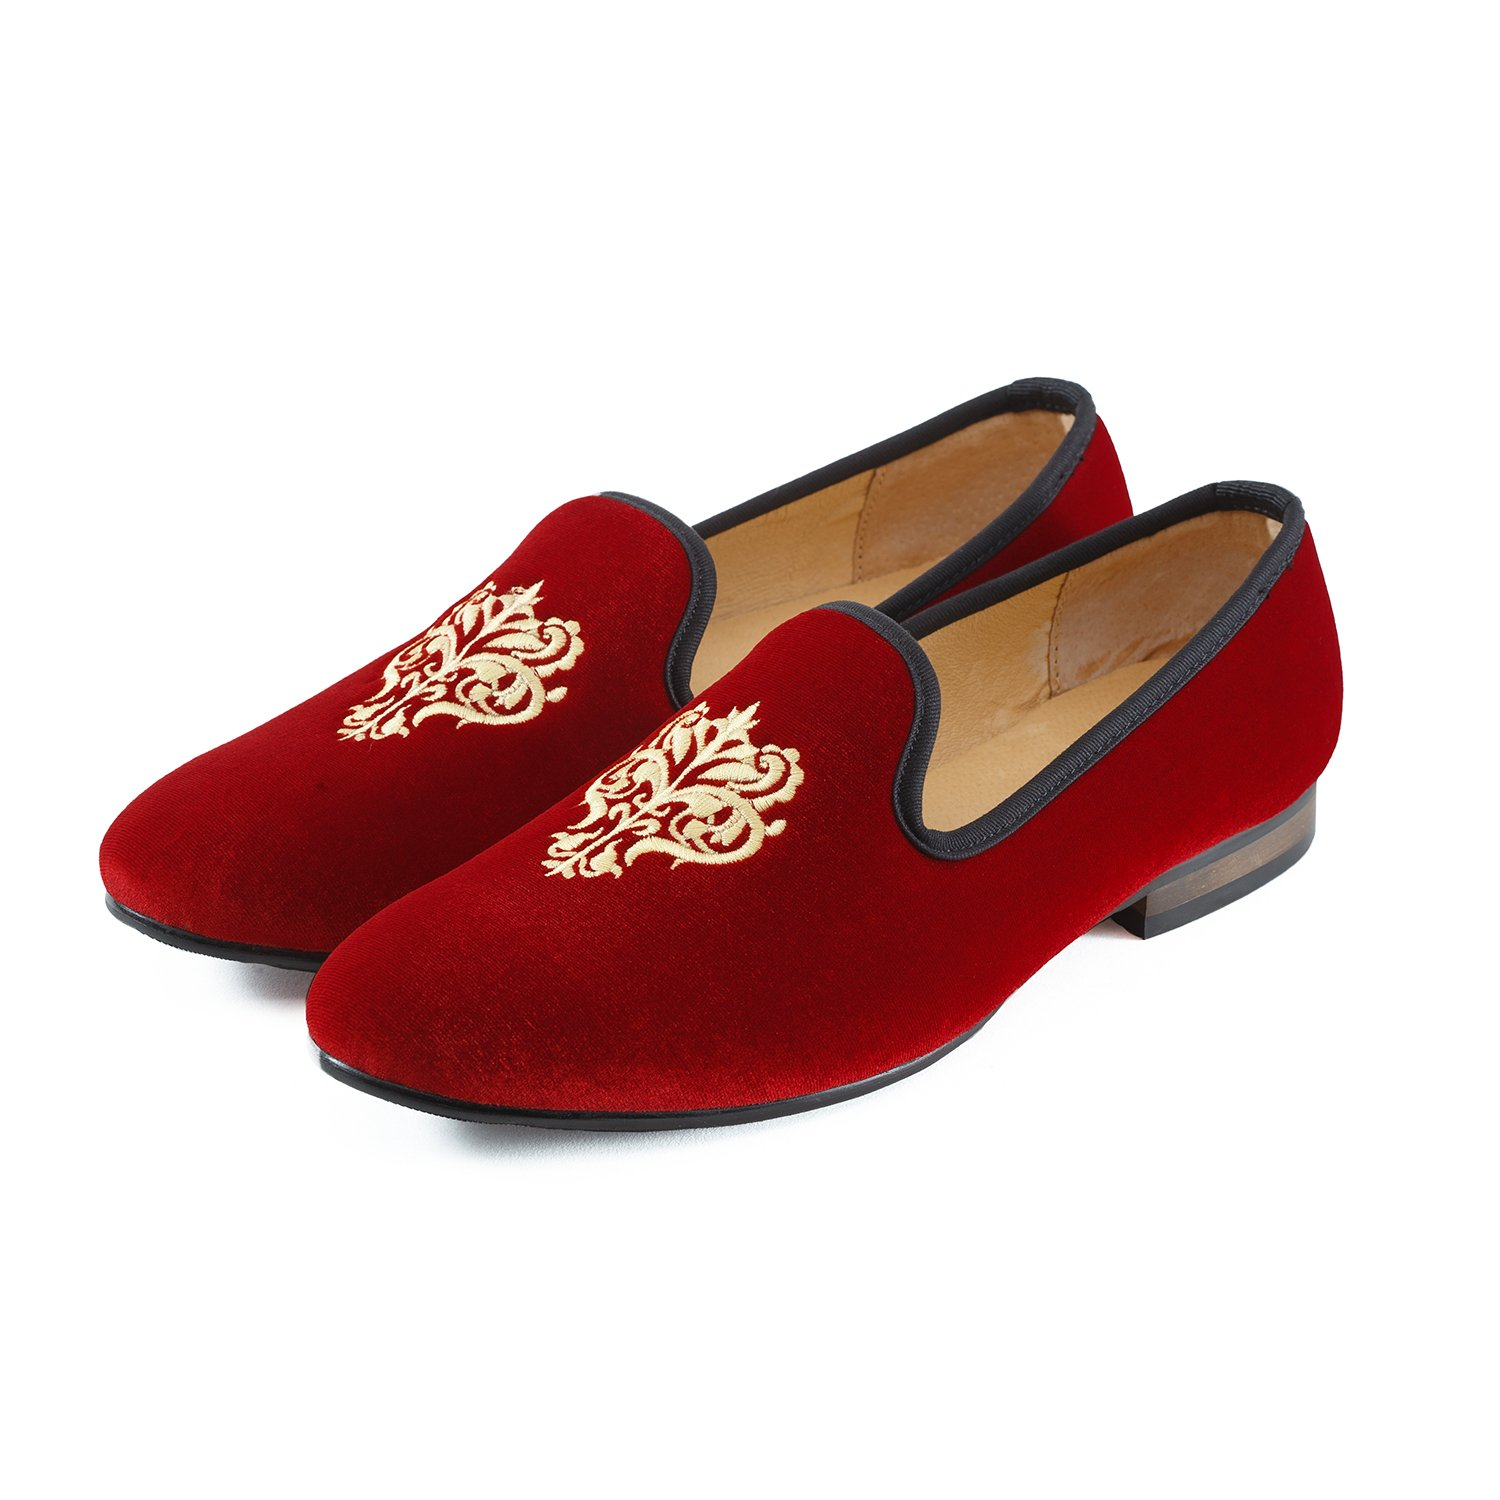 Mocassins Homme Broderie Noble Mocassins Velours Chaussure Vintage Chausson Fantaisie Chaussures Homme Loafers Homme Slippers Homme Pantoufle Noir//Rouge//Bleu